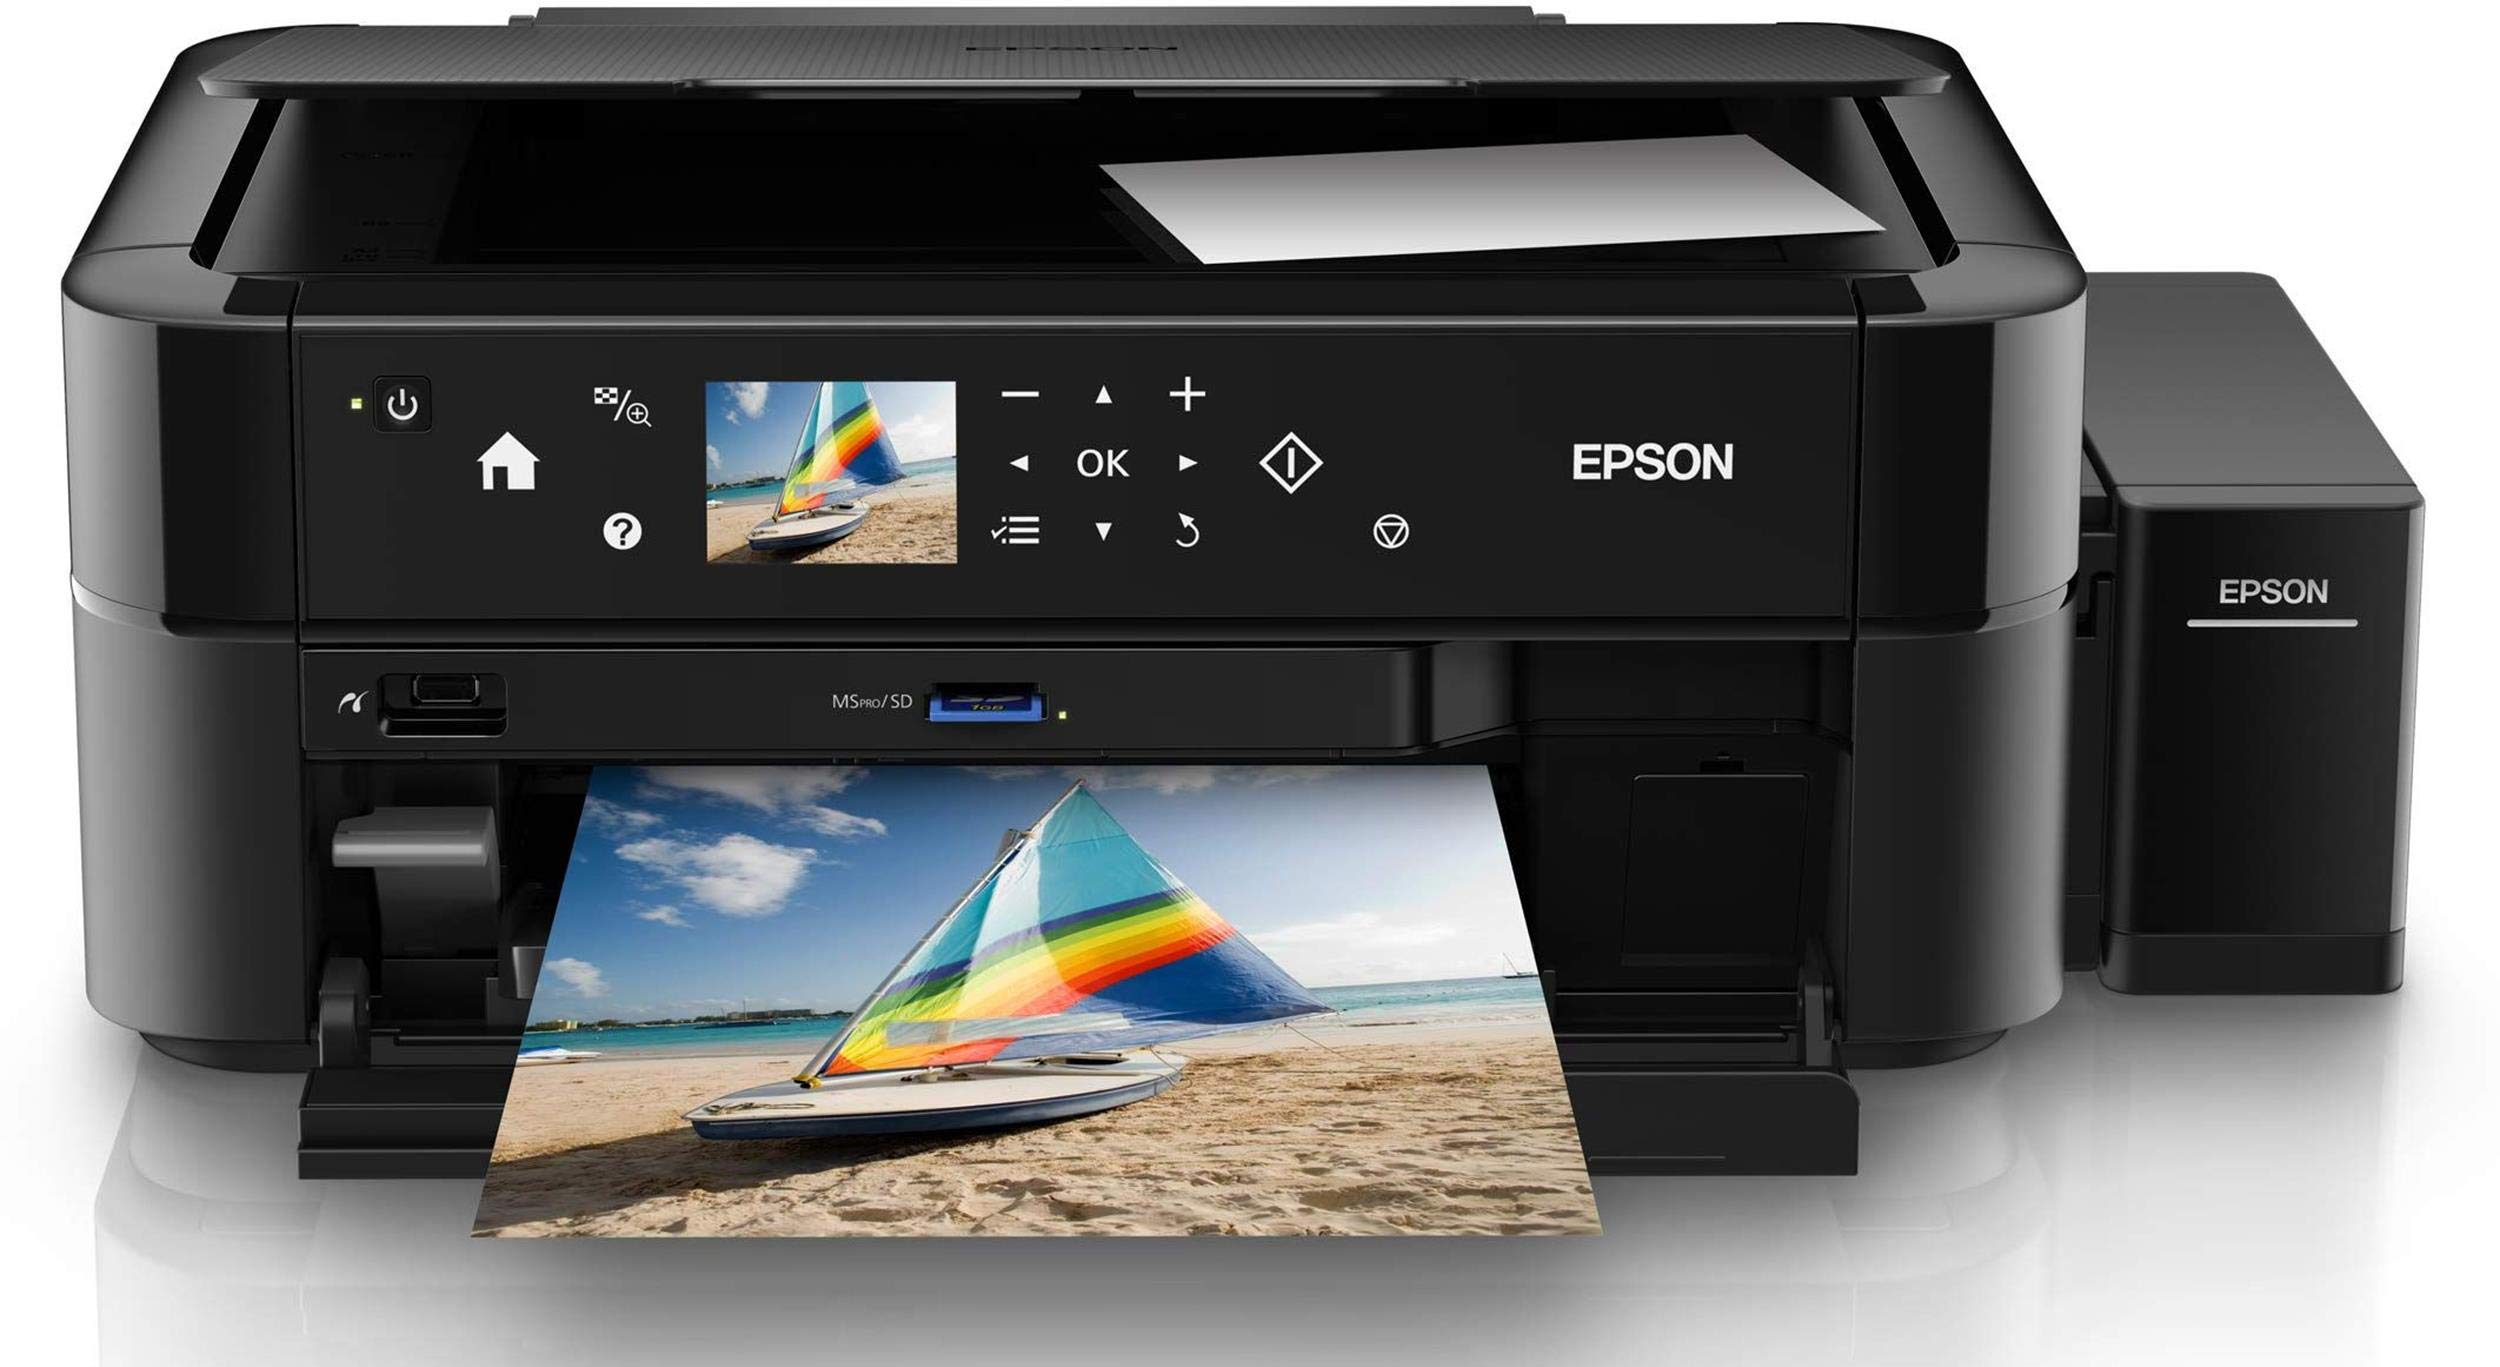 Epson L805 Wi Fi Photo Ink Tank Printer Star Light Supplies Kuwait No 1 Online Portal For Office Supplies And Stationery In Kuwait